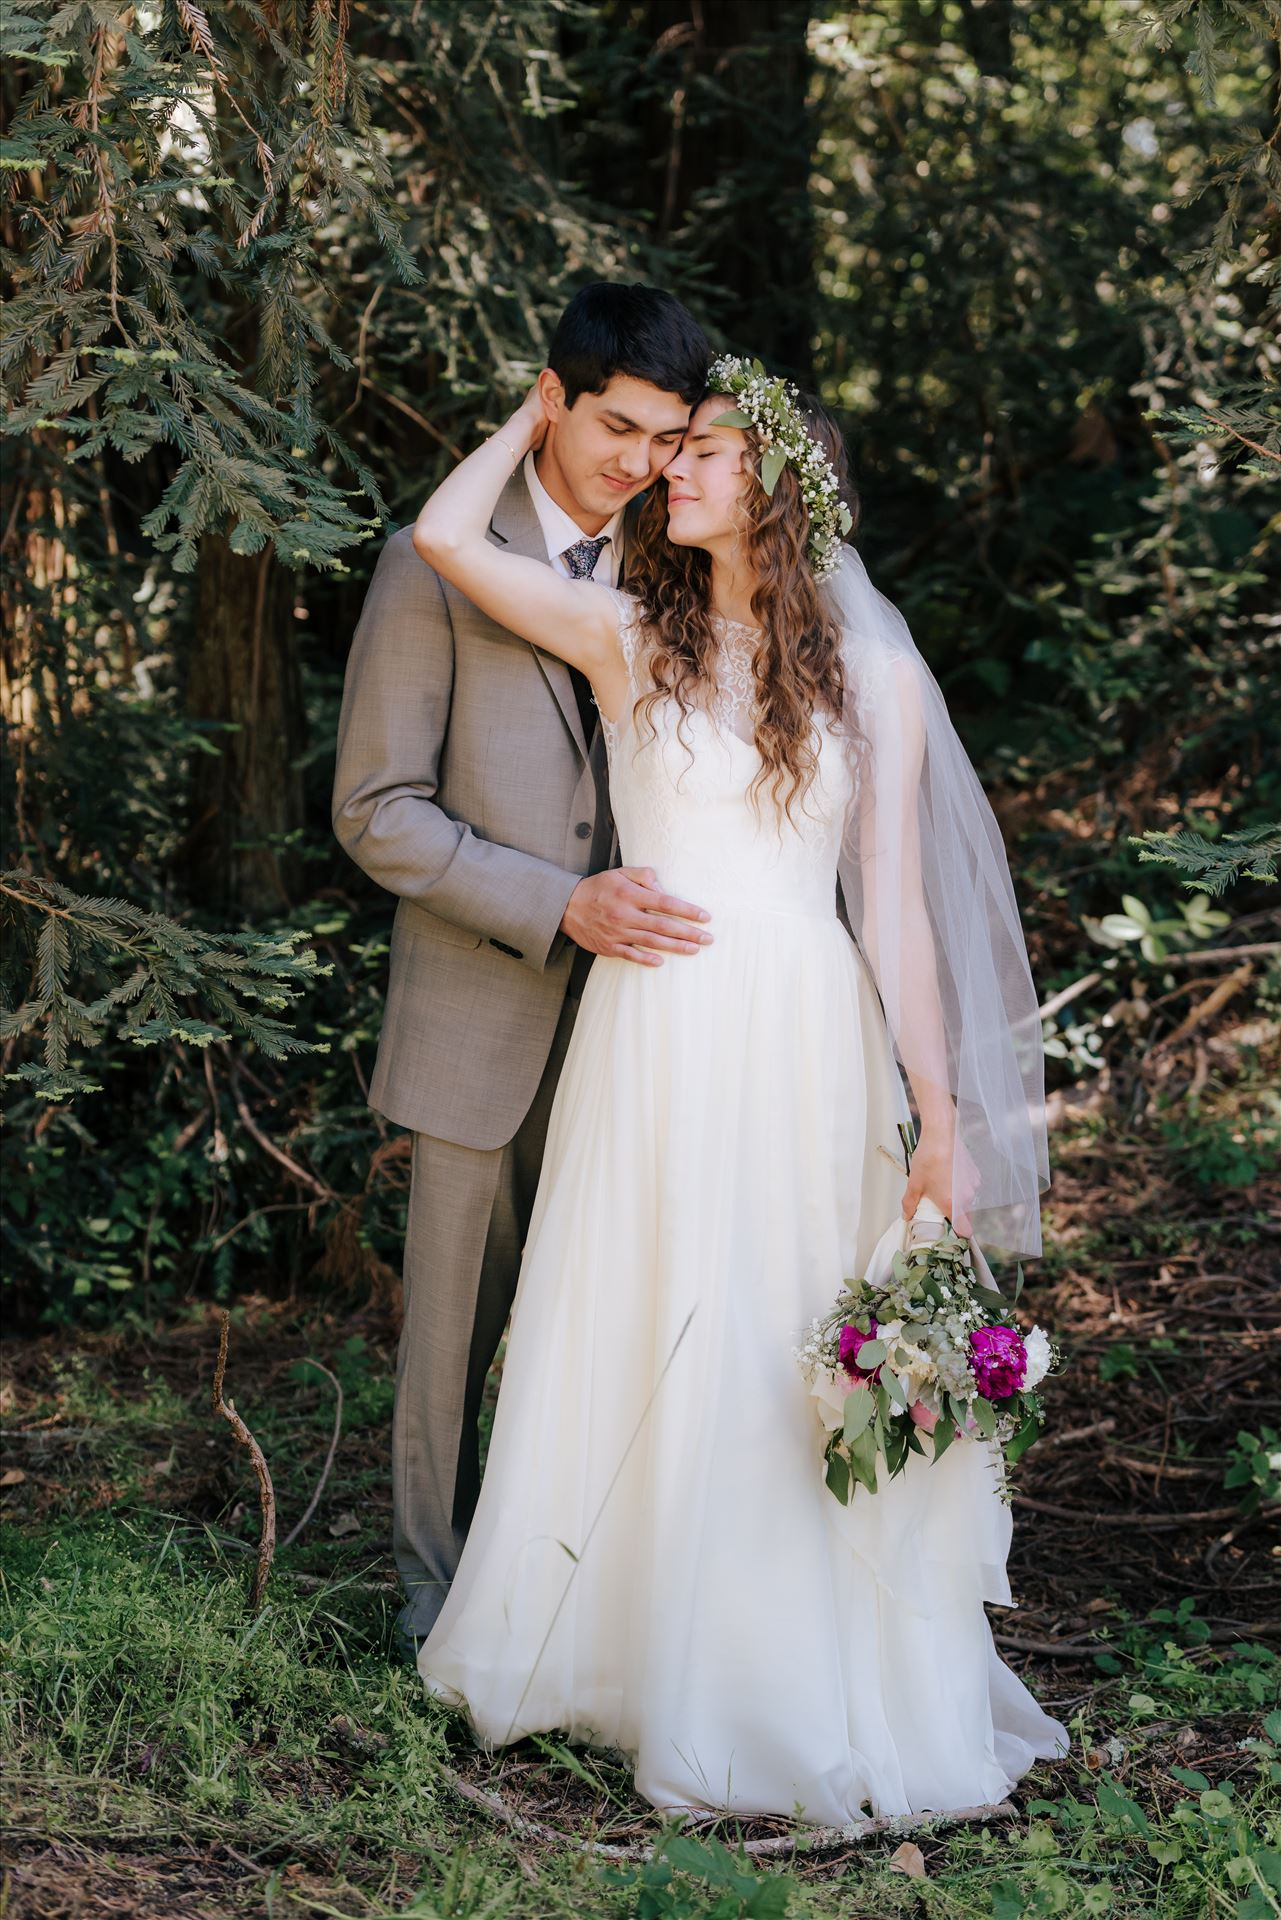 FW-5983.JPGMt Madonna wedding in the redwoods outside of Watsonville, California with a romantic and classic vibe by sarah williams of mirror's edge photography a san luis obispo wedding photographer.  Bride and groom romantic